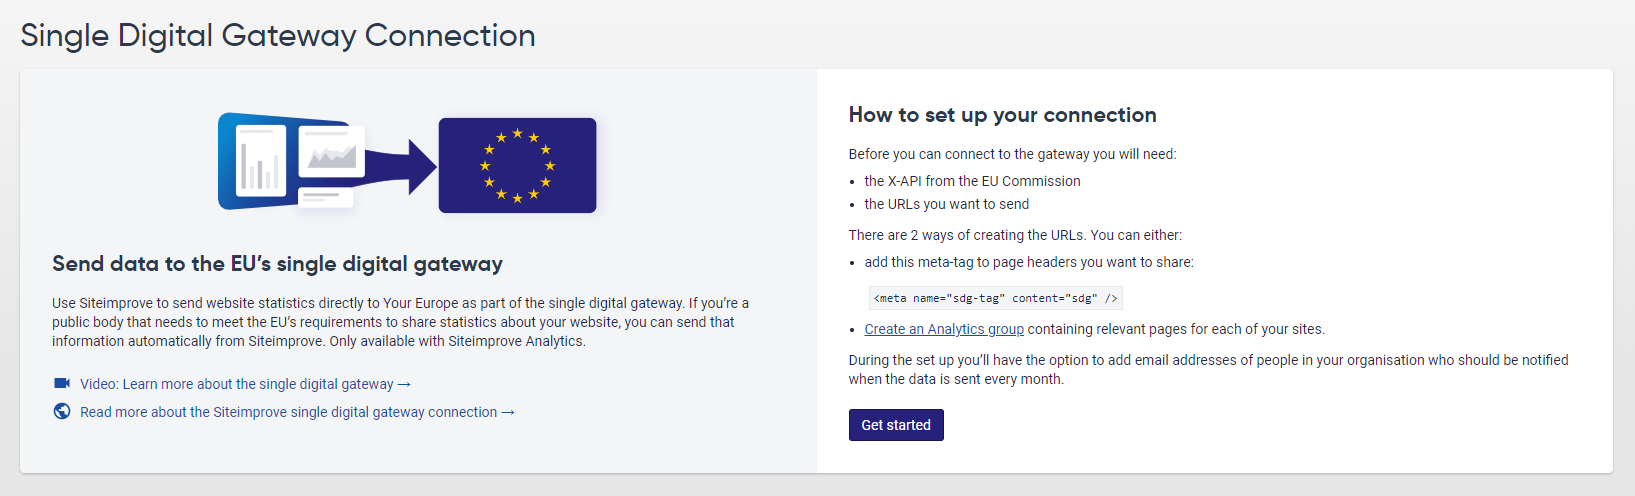 Screenshot of the Single Digital Gateway Connection page that lets users set up their connection.